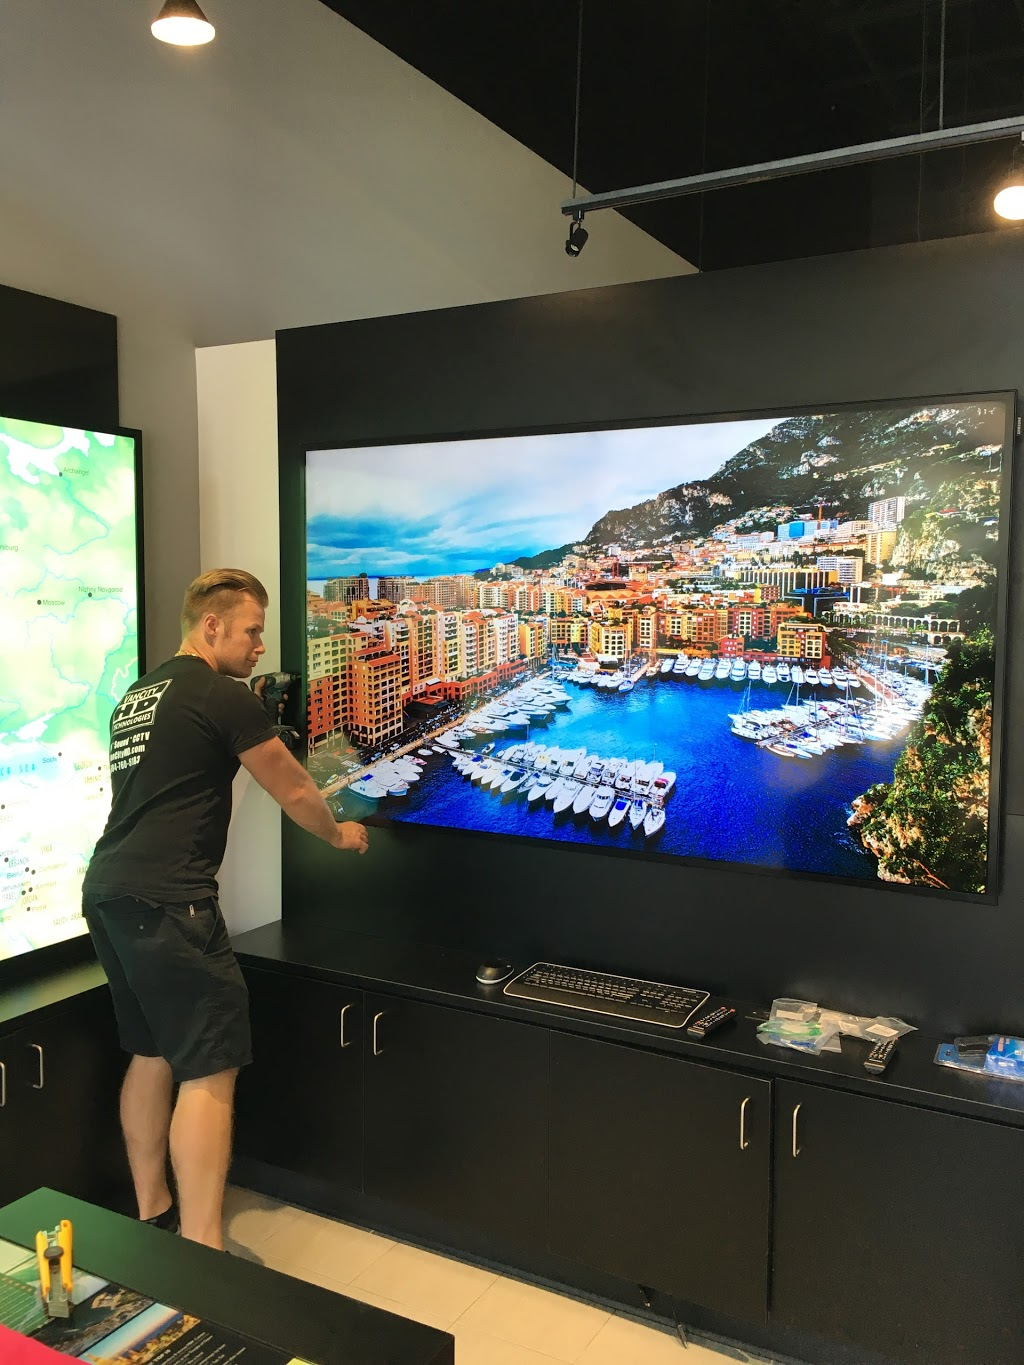 VanCity HD-TV Mounting Vancouver   electronics store   1288 W Cordova St, Vancouver, BC V6C 3R3, Canada   6047605183 OR +1 604-760-5183